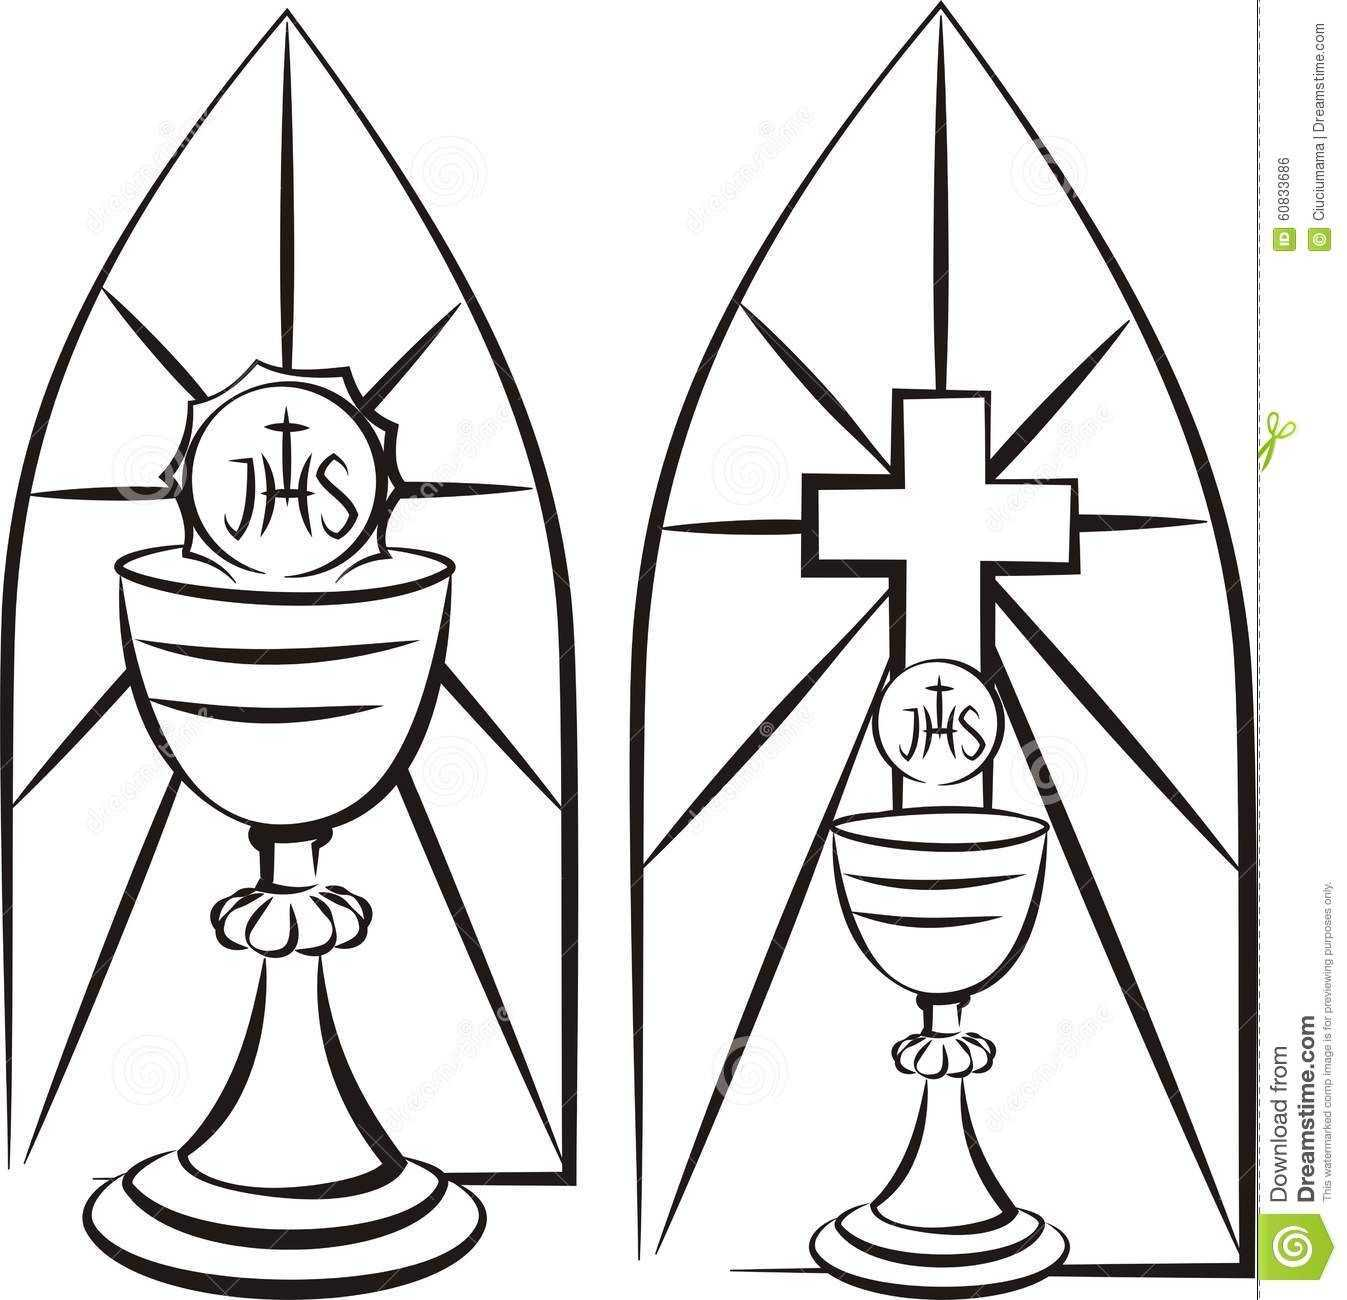 Image Result For Stain Glass First Communion Banner Template Within First Holy Communion Banner Templates